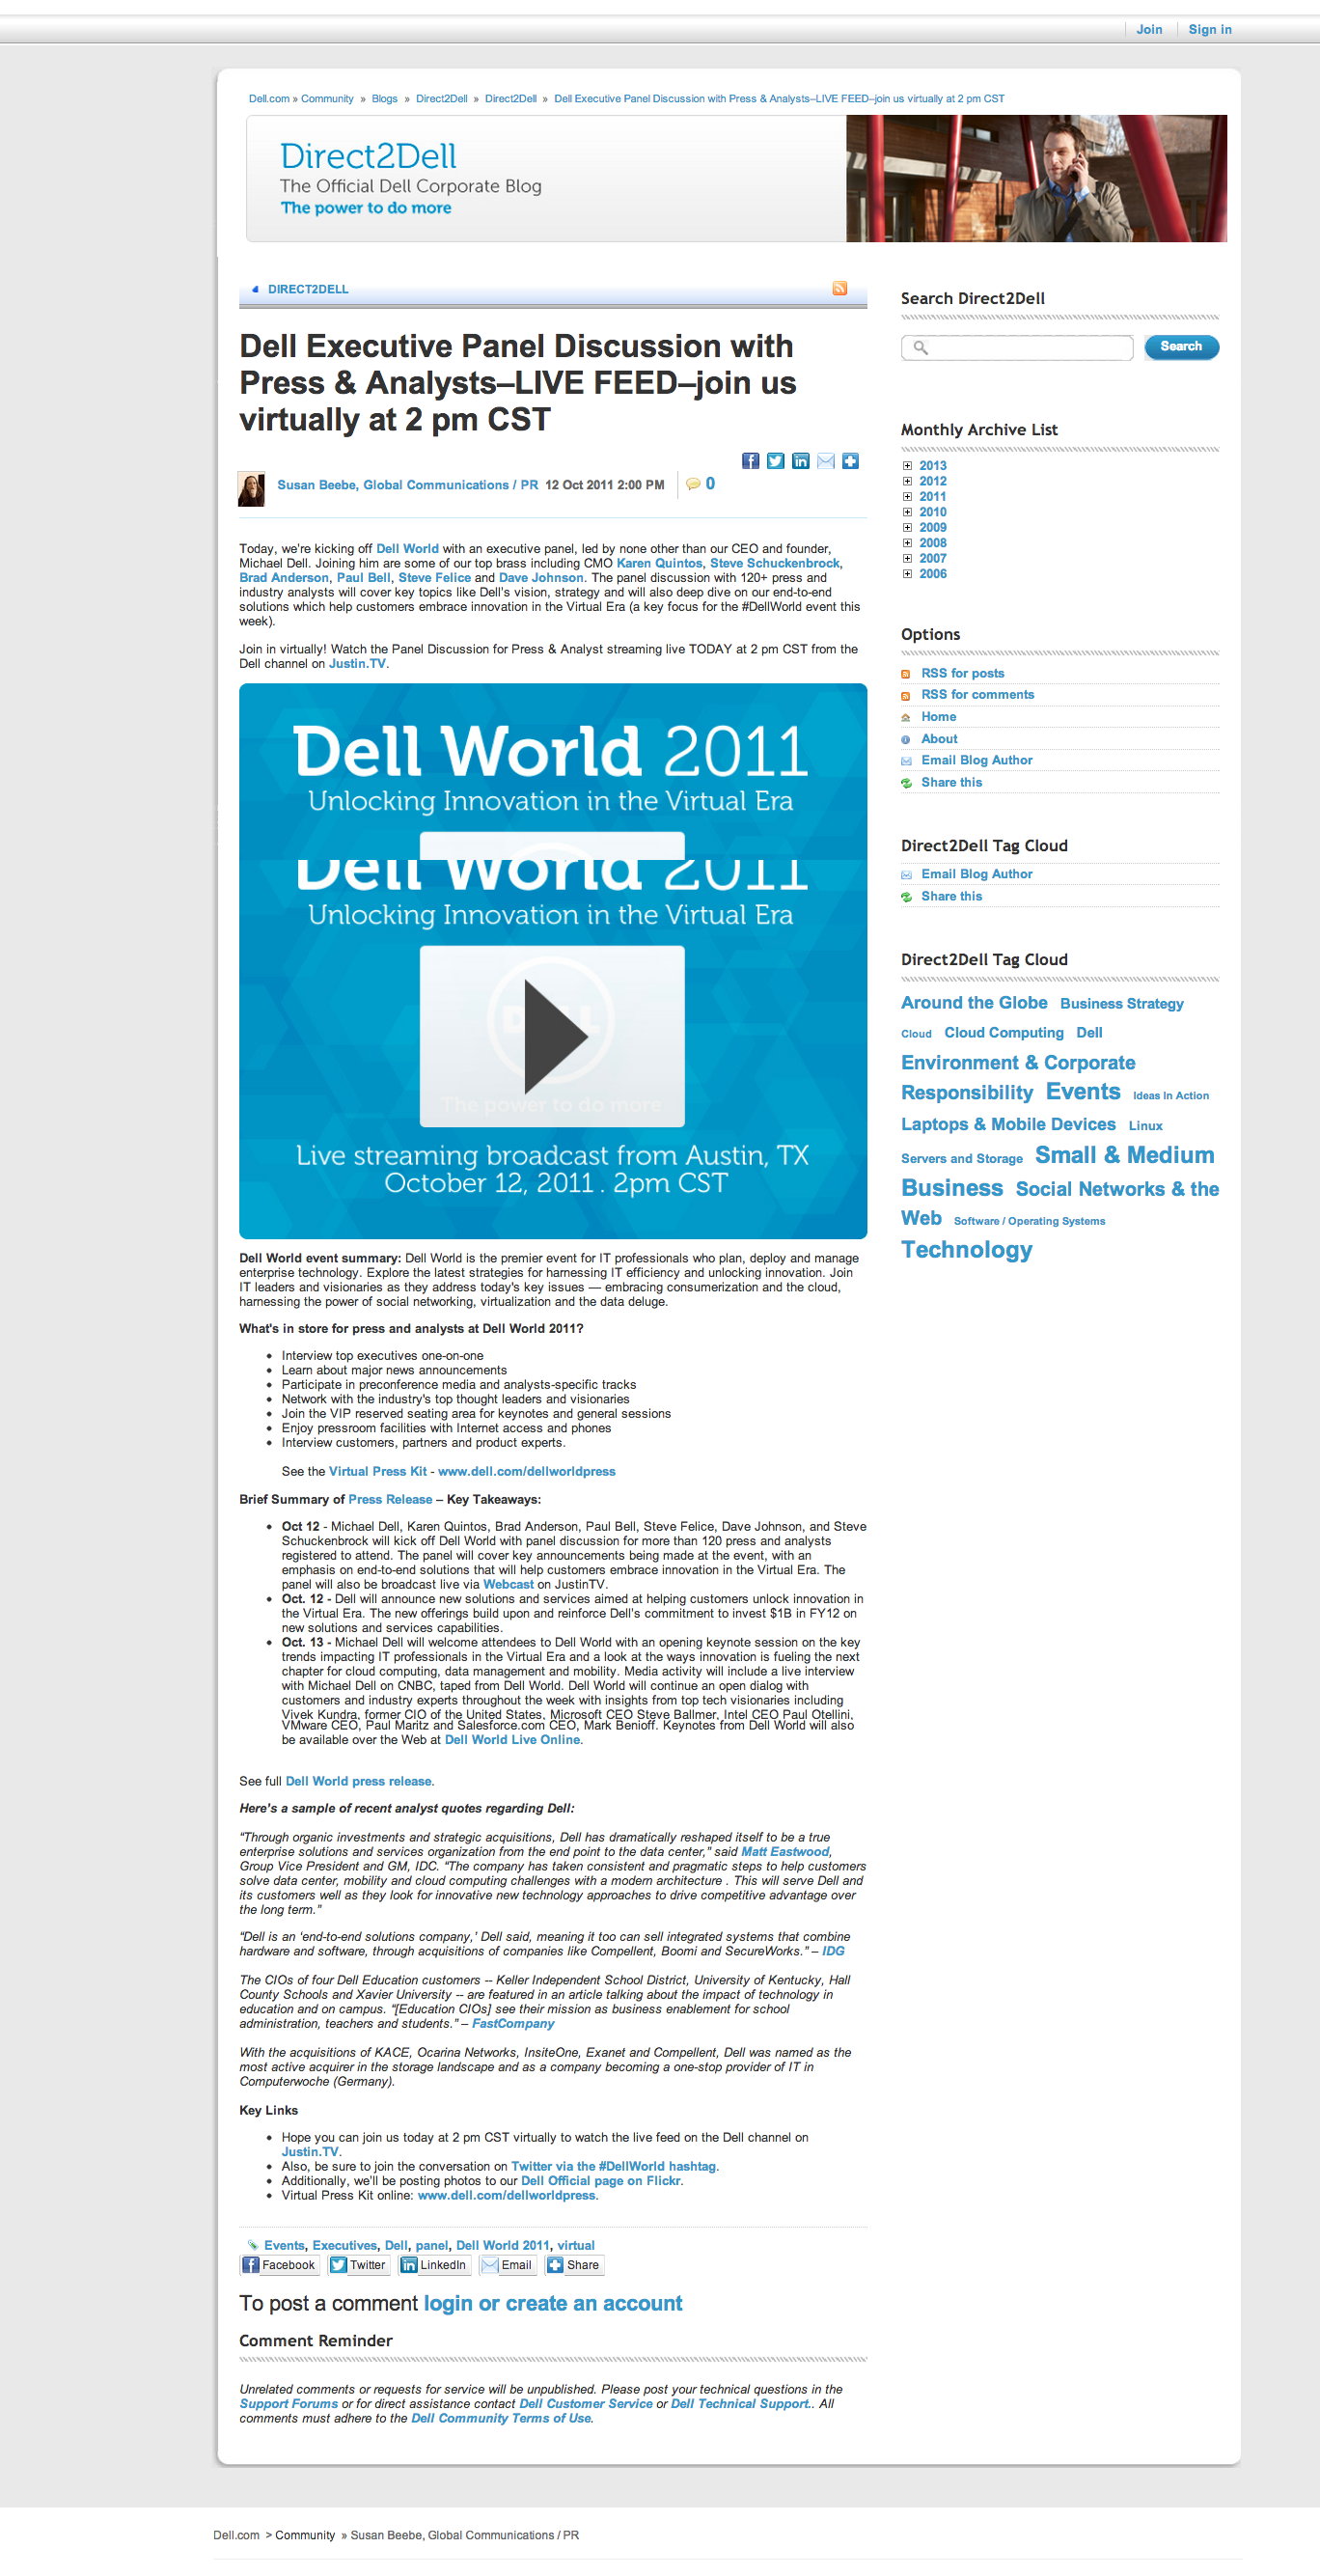 Dell Executive Panel Discussion with Press & Analysts–LIVE FEED–join us virtually at 2 pm CST